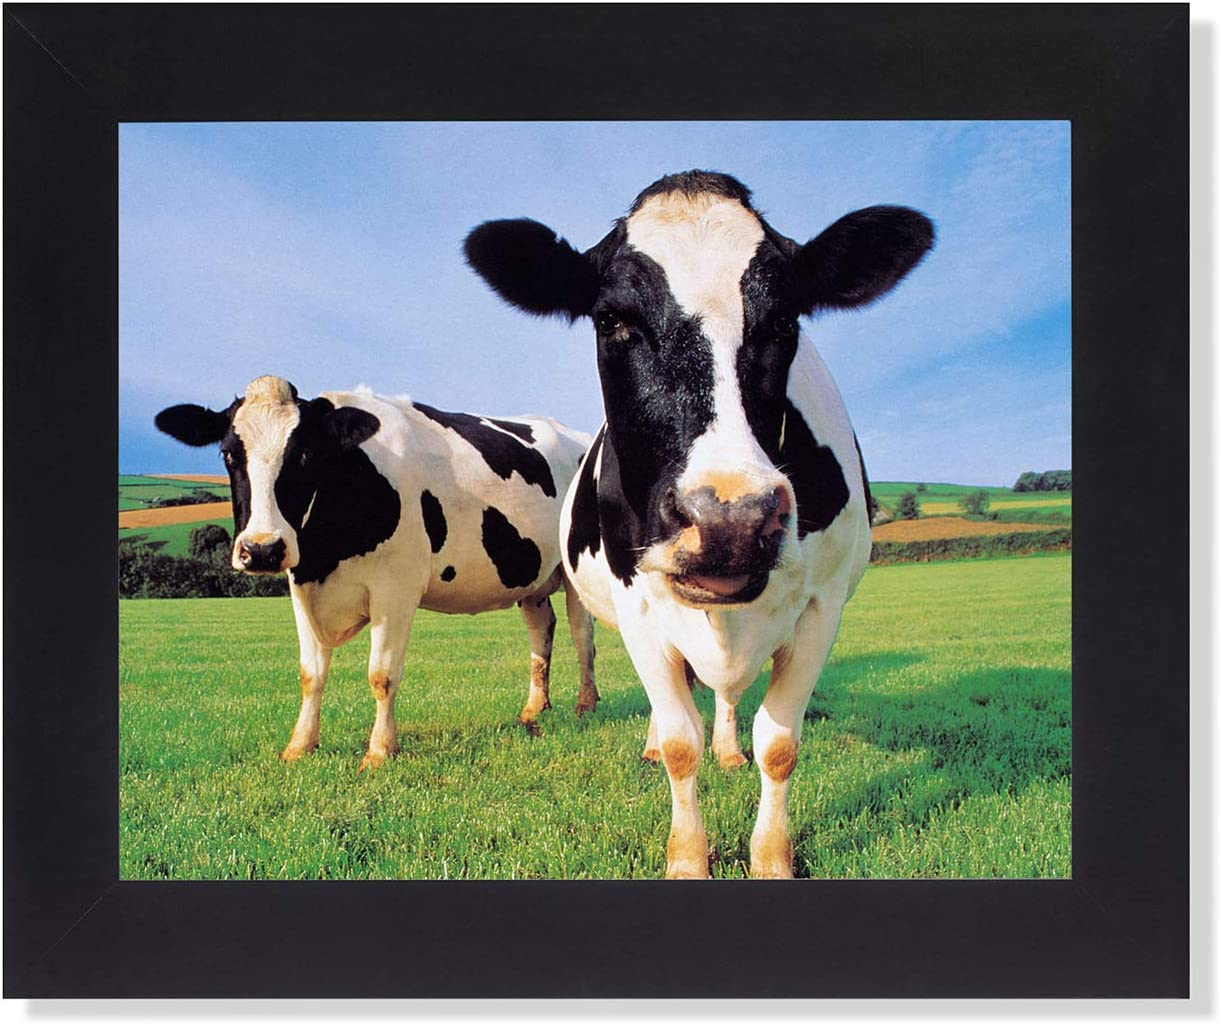 Two Holstein Cows Standing In Grass Farm Photo Wall Picture Framed Art Print Posters Prints